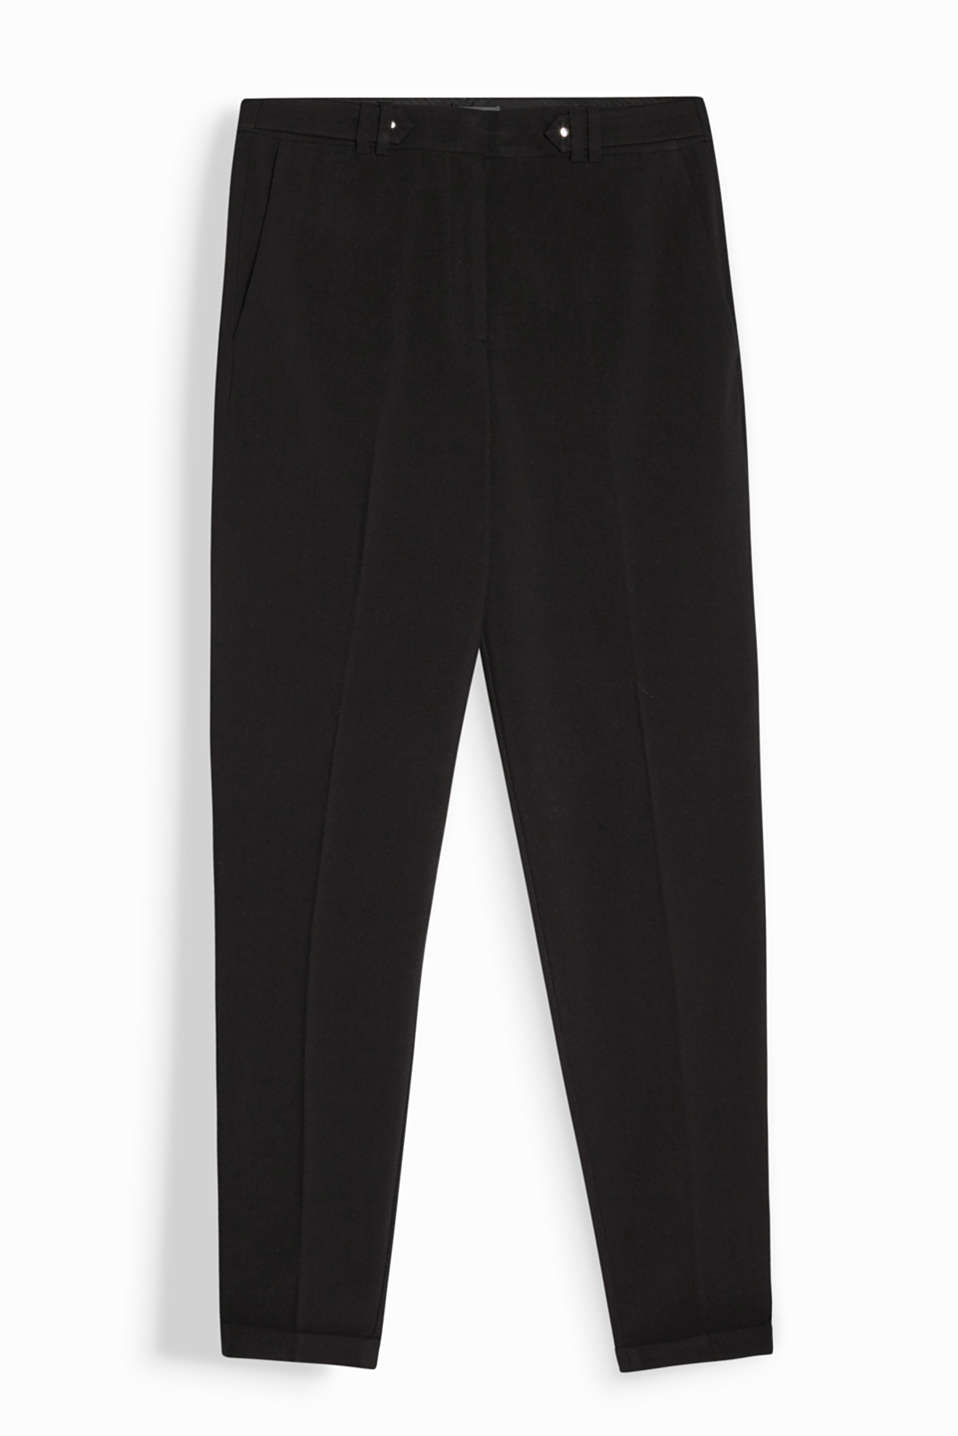 These business trousers look so new and modern with a cropped leg and waist straps!